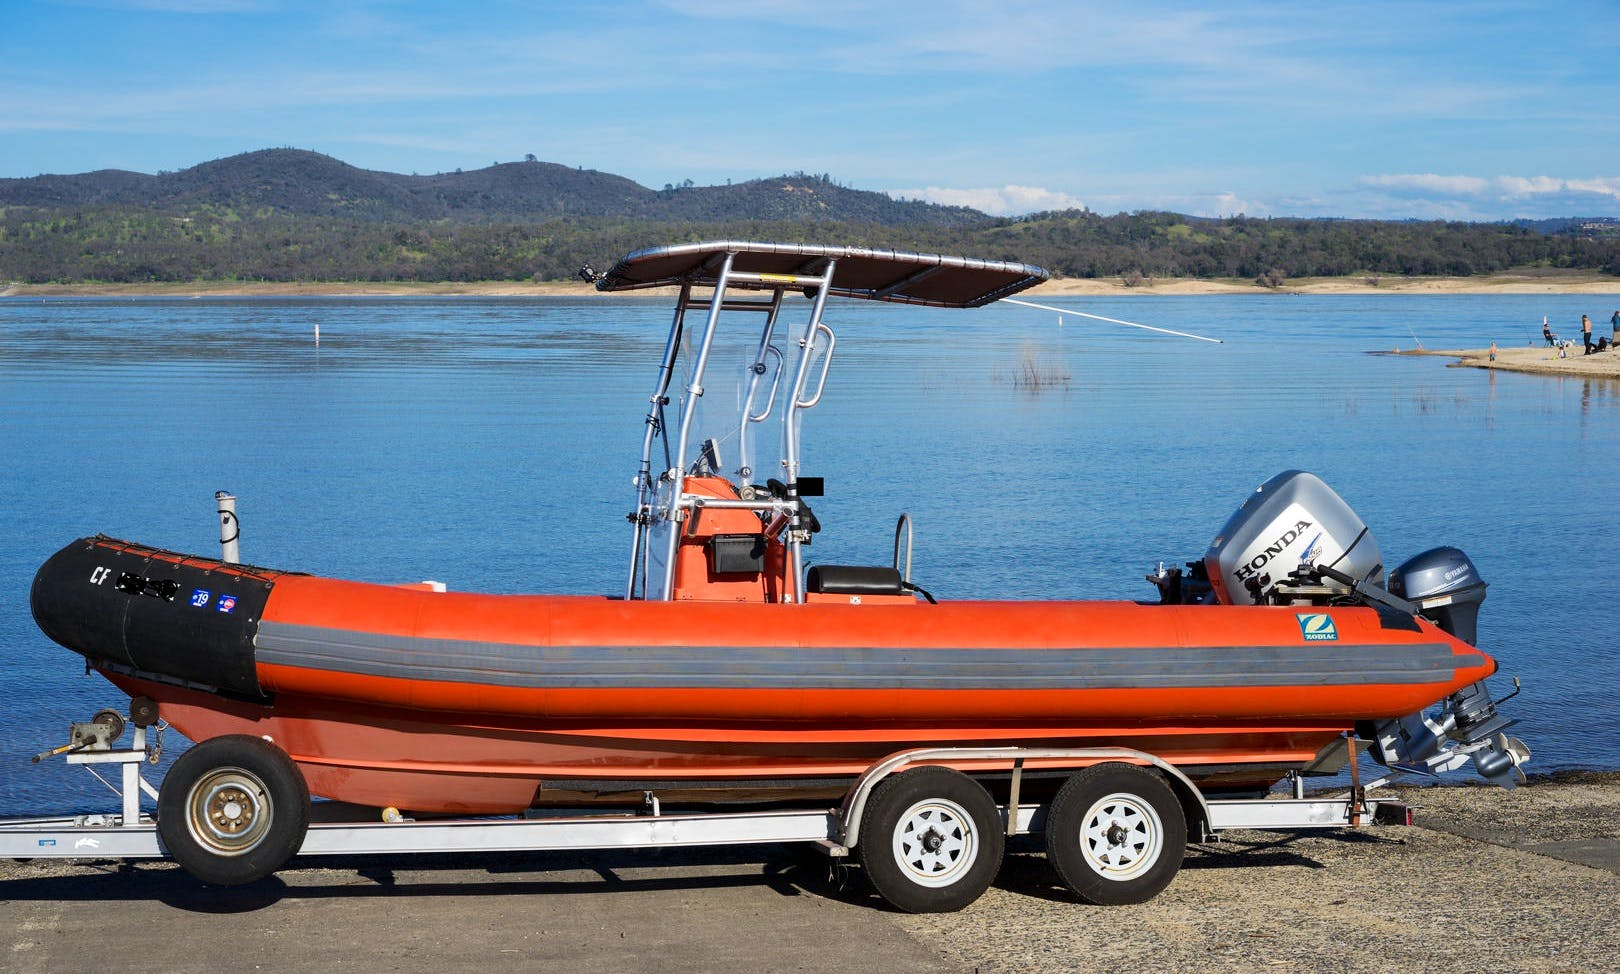 Zodiac Hurricane Center Console RHIB in the San Francisco Bay Area